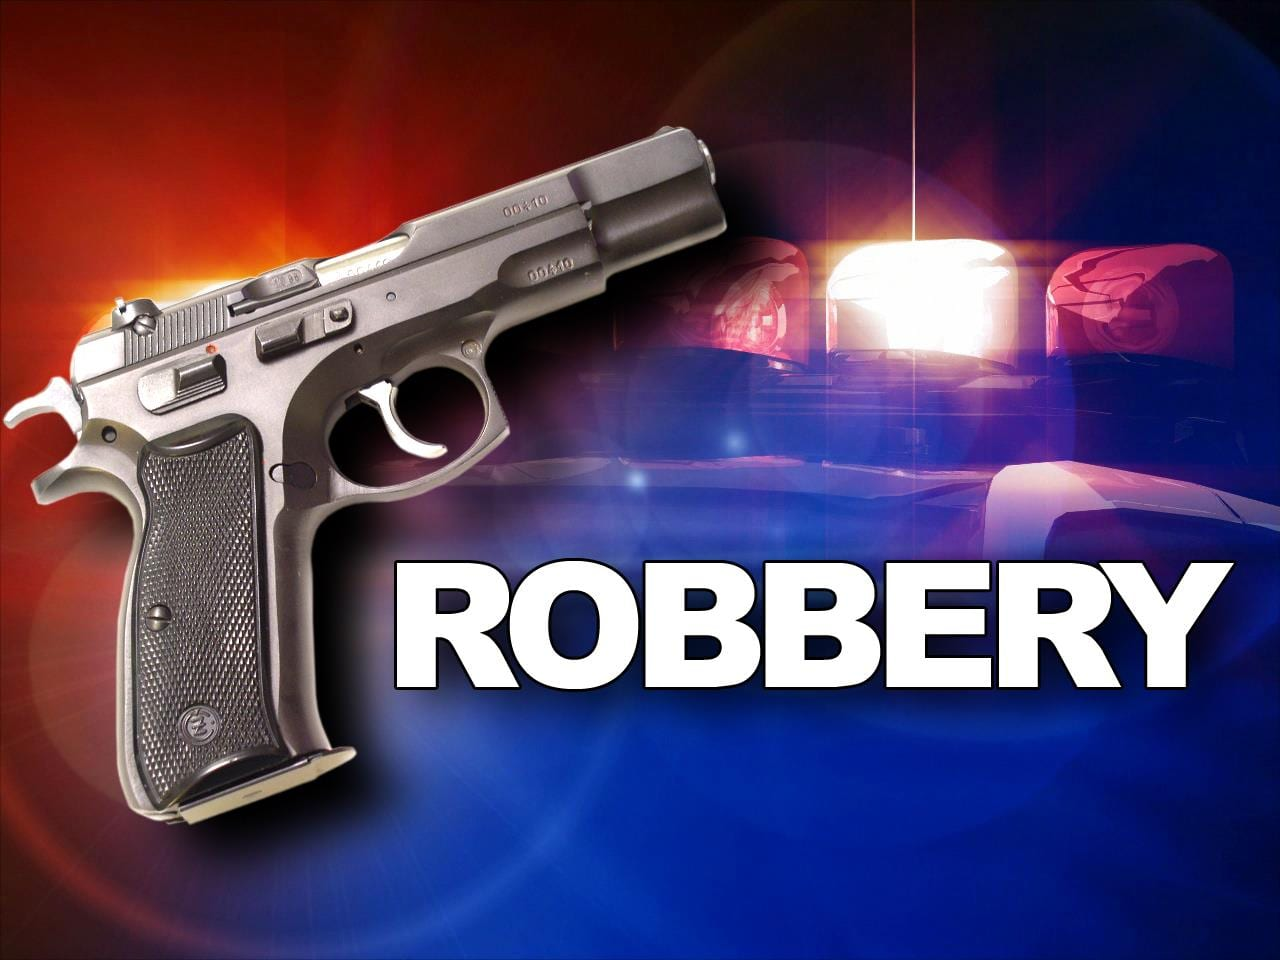 UER: Armed robbers kill 3 persons in rural bank attack